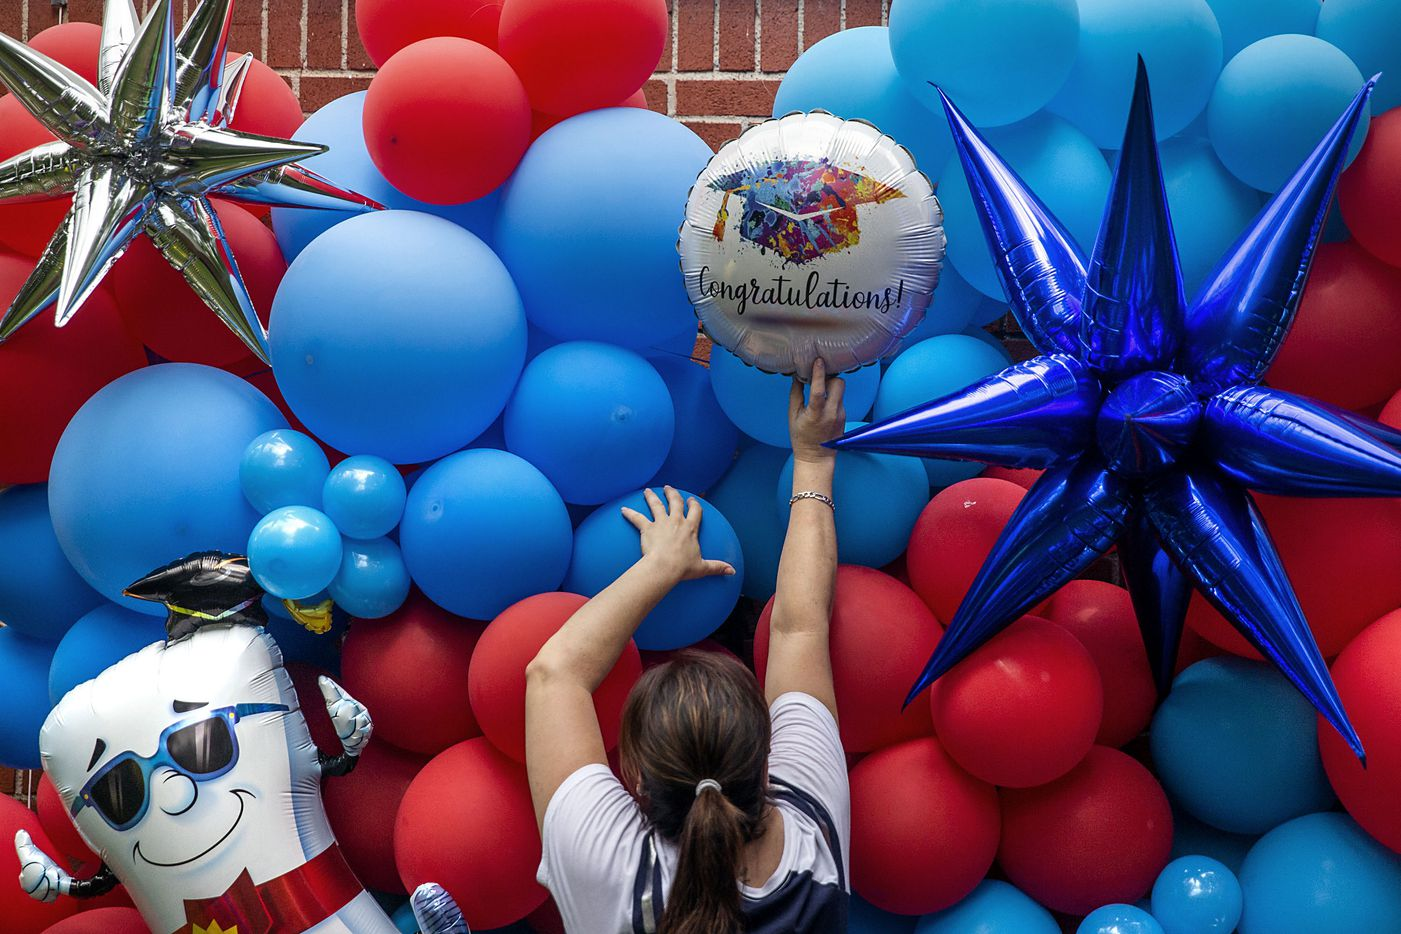 """Mary Ullah helps her daughter — a professional balloon decorator and owner of Laura's Loons —   install a 'Class of 2020' balloon wall for Ullah's son, Israel, at their home in the Pleasant Grove neighborhood in Dallas on Thursday, May 14, 2020. Israel was devastated when he found out that the school's graduation ceremony would be held virtually due to the COVID-19 pandemic, Israel's sister, Laura, said. """"I wanted him to get that spunk back that he lost when he found out,"""" she said. """"Balloons lift the mood immediately, and I just wanted to lift his mood and do something that was just for him."""""""